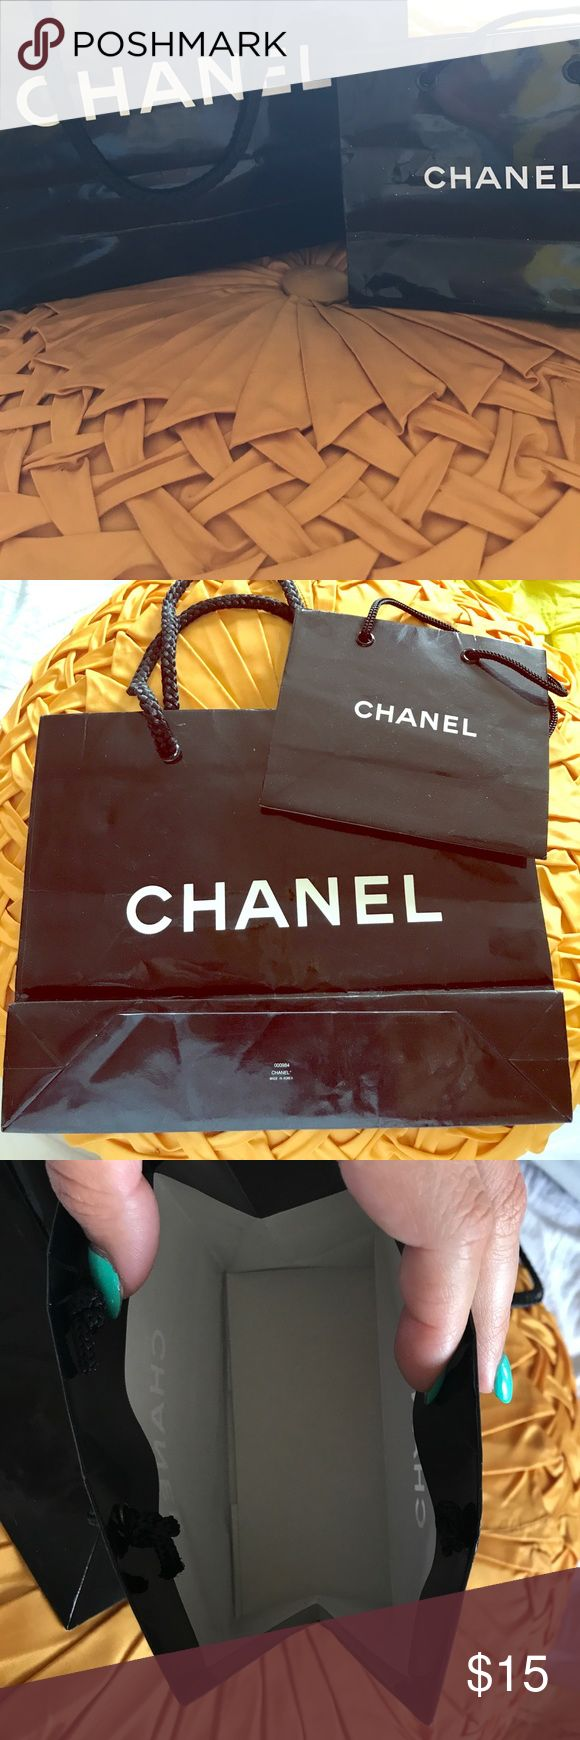 Two authentic CHANEL shopping bags One small and one medium. In good condition! CHANEL Bags